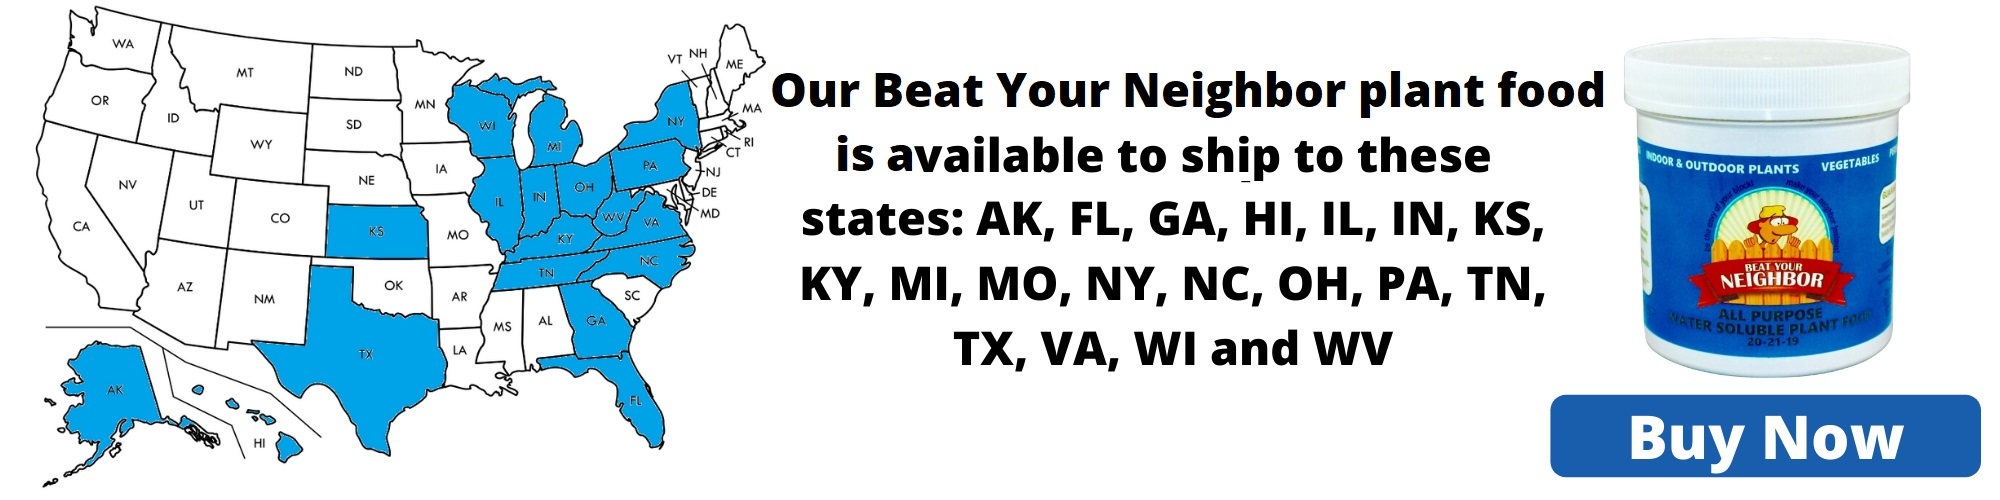 Our Beat Your Neighbor fertilizer is available to ship to these states with FREE fast shipping